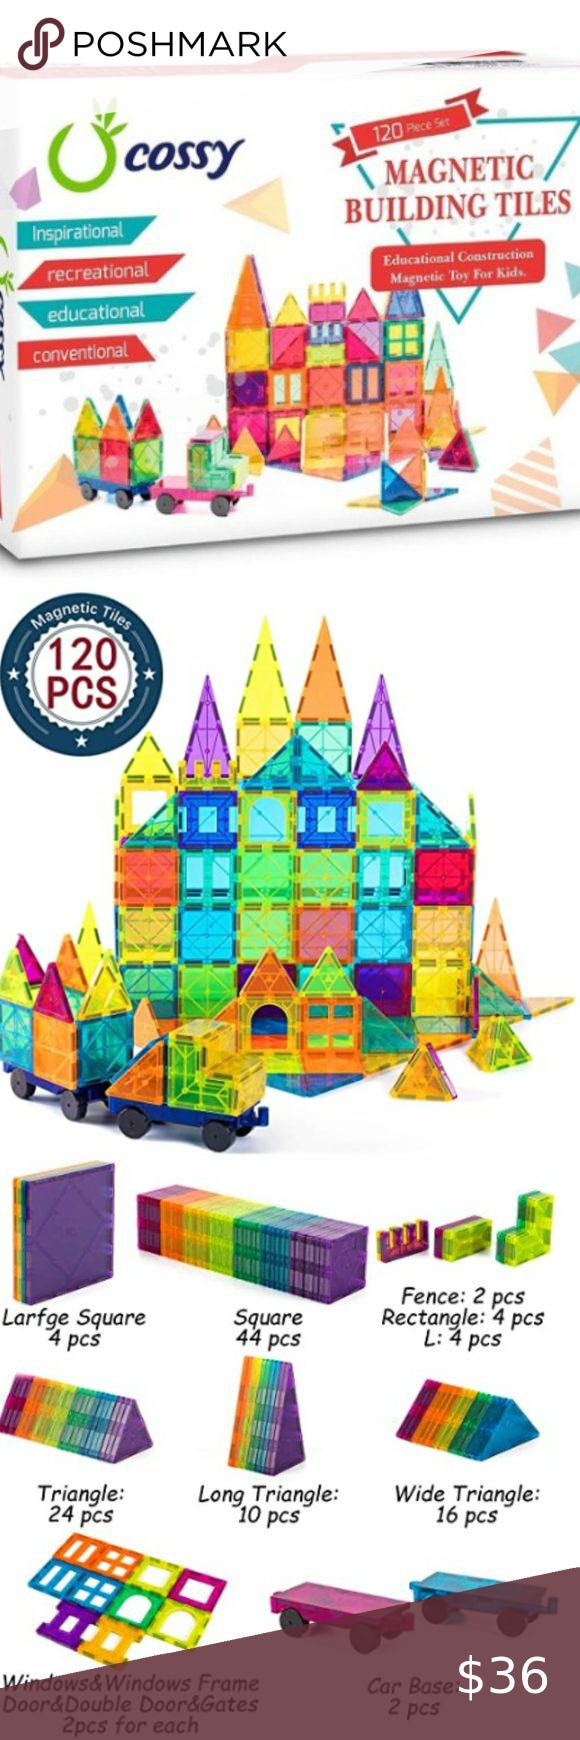 Cossy Magnetic Tiles Building Blocks Cossy Magnetic Tiles New Nwt And Sealed 120 Piece Set Recommended For Ages In 2020 Kids Magnets Magnetic Tiles Building Blocks